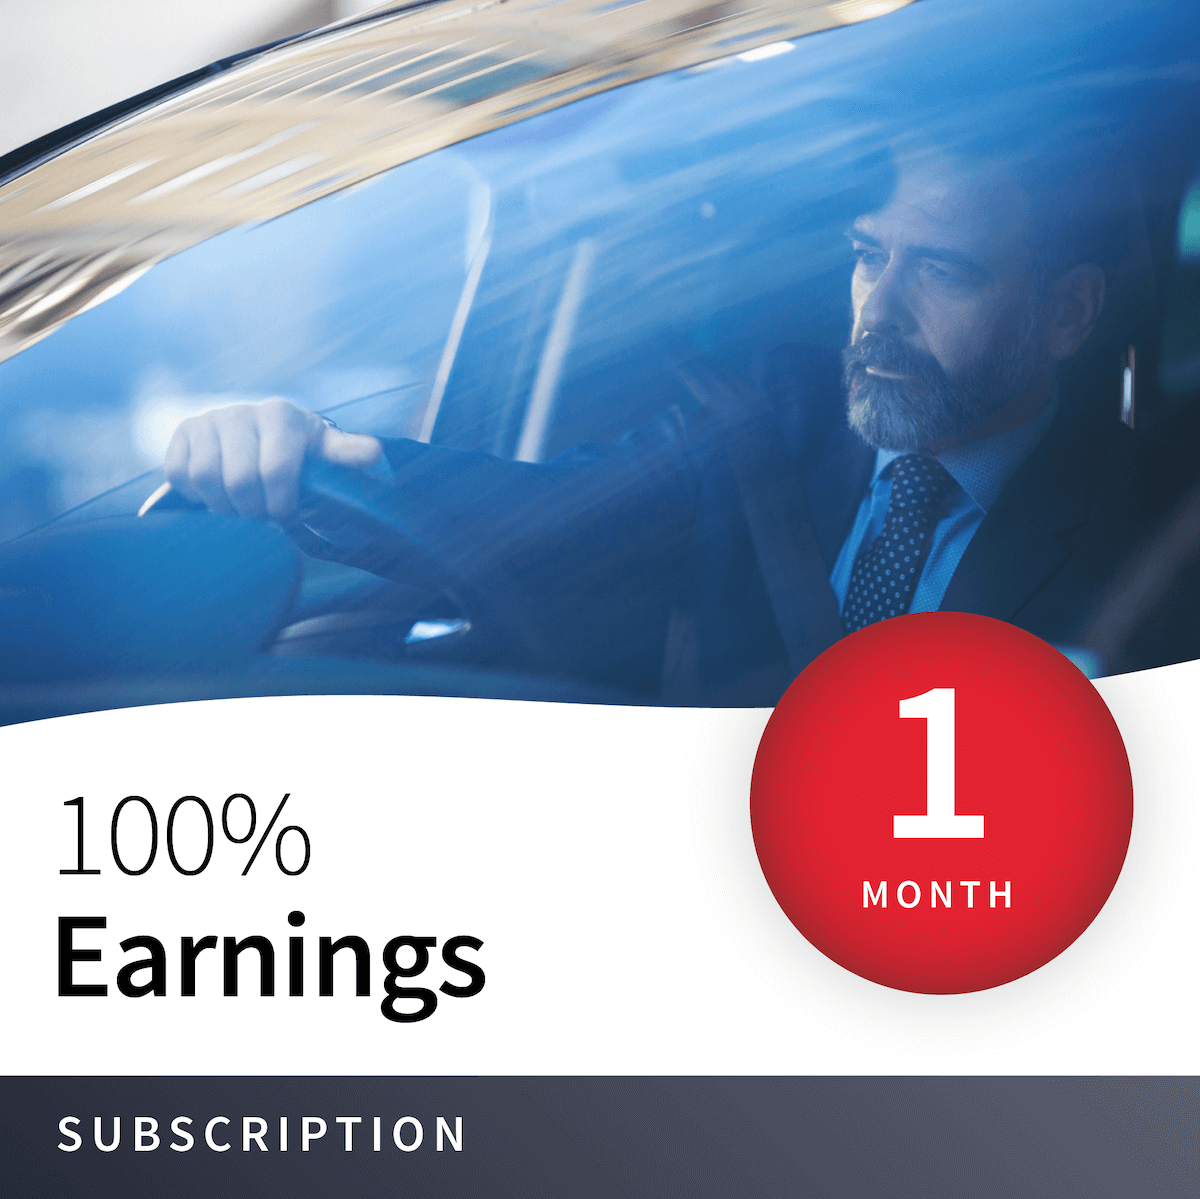 100% Earnings - 1 Month 15